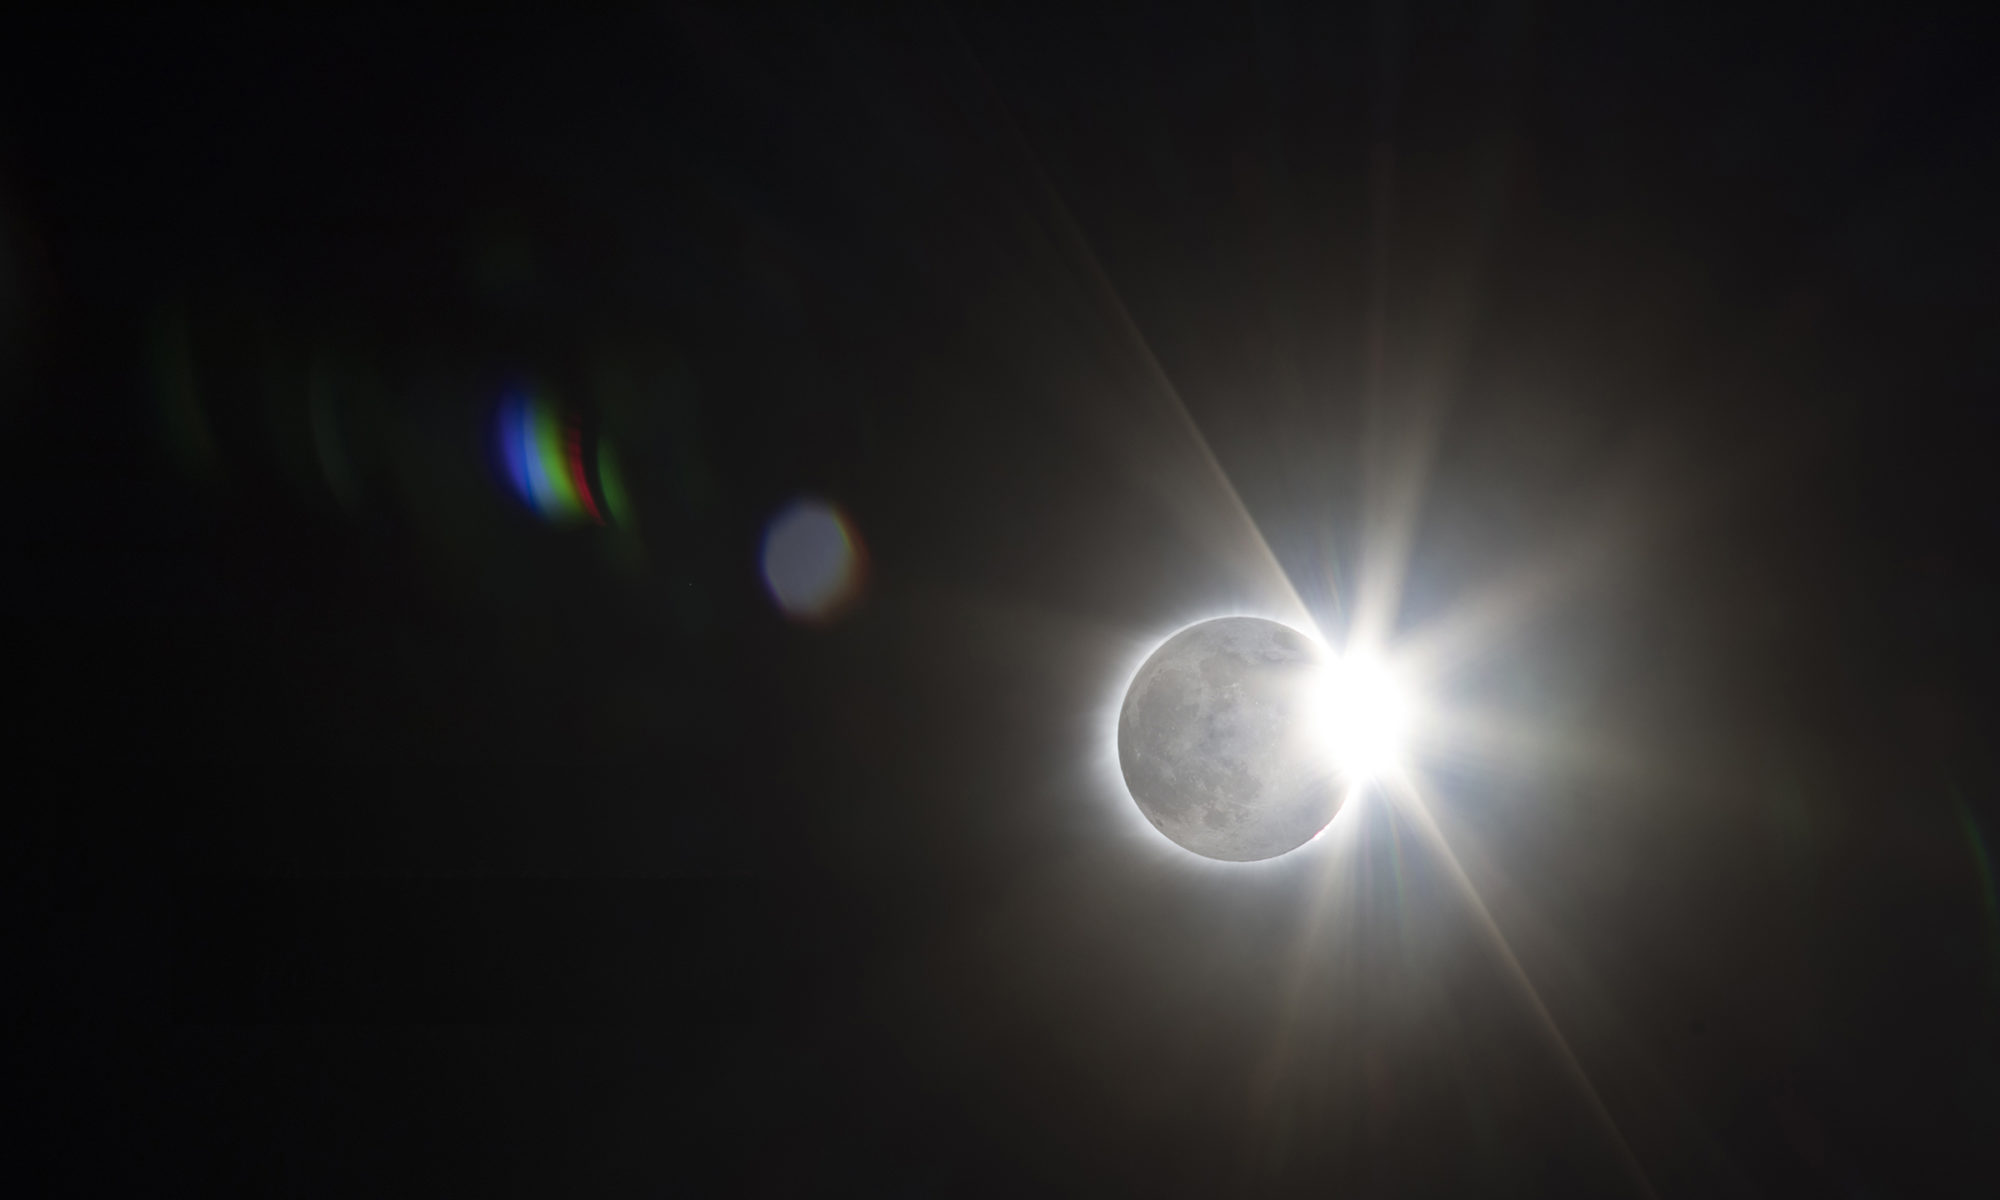 2017 Eclipse Rendered with Moon